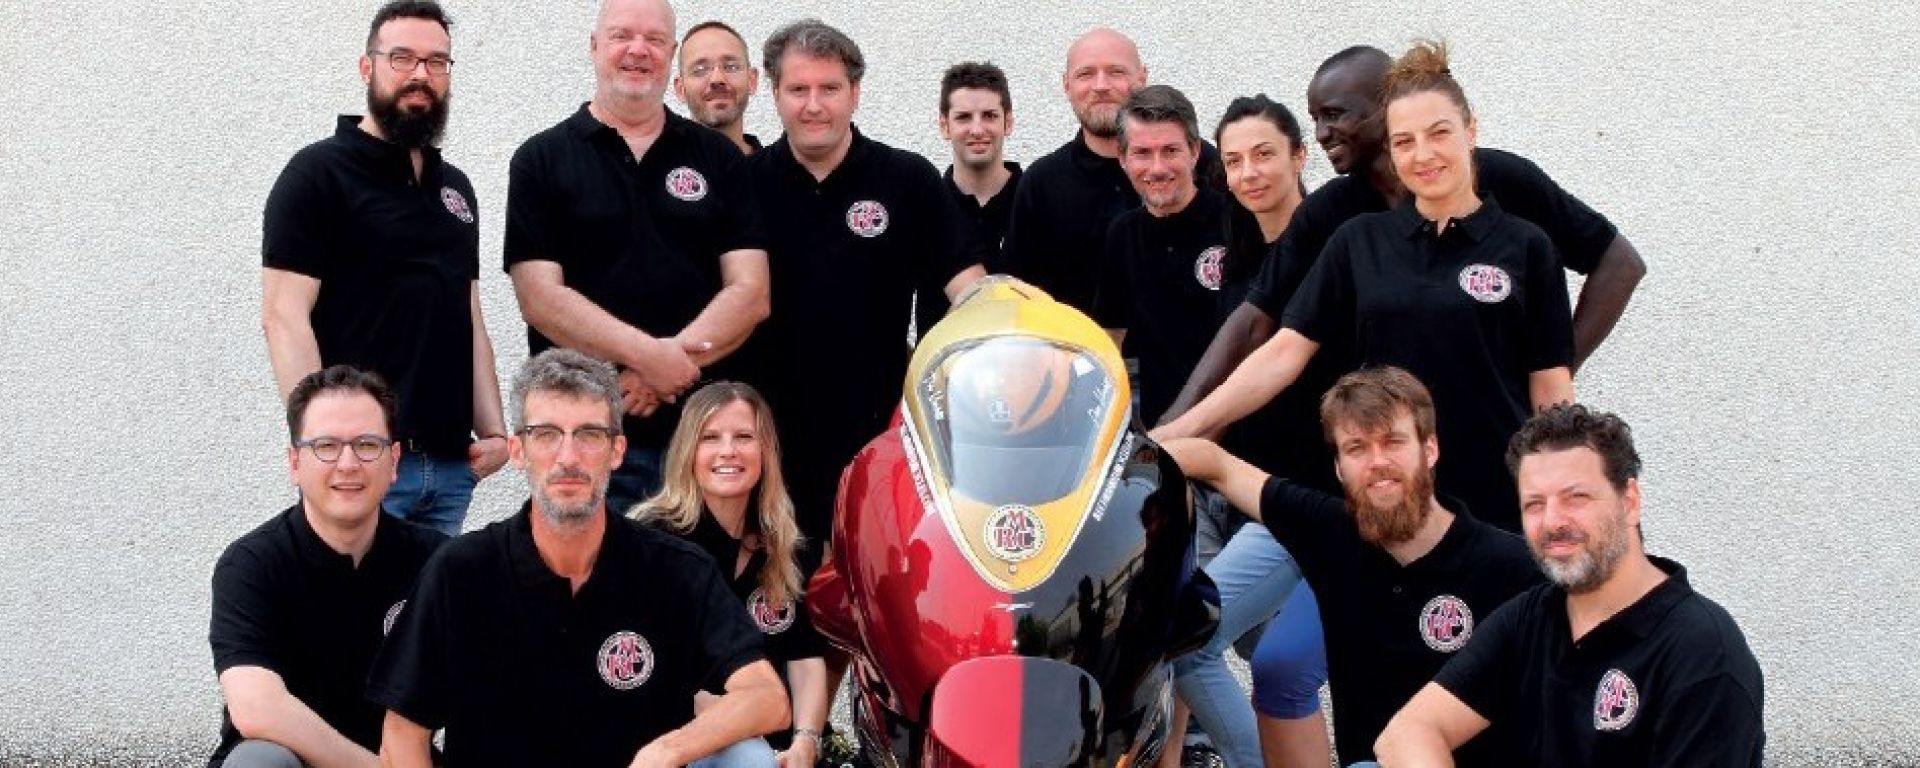 Team RMC (Record Motor Cycles)